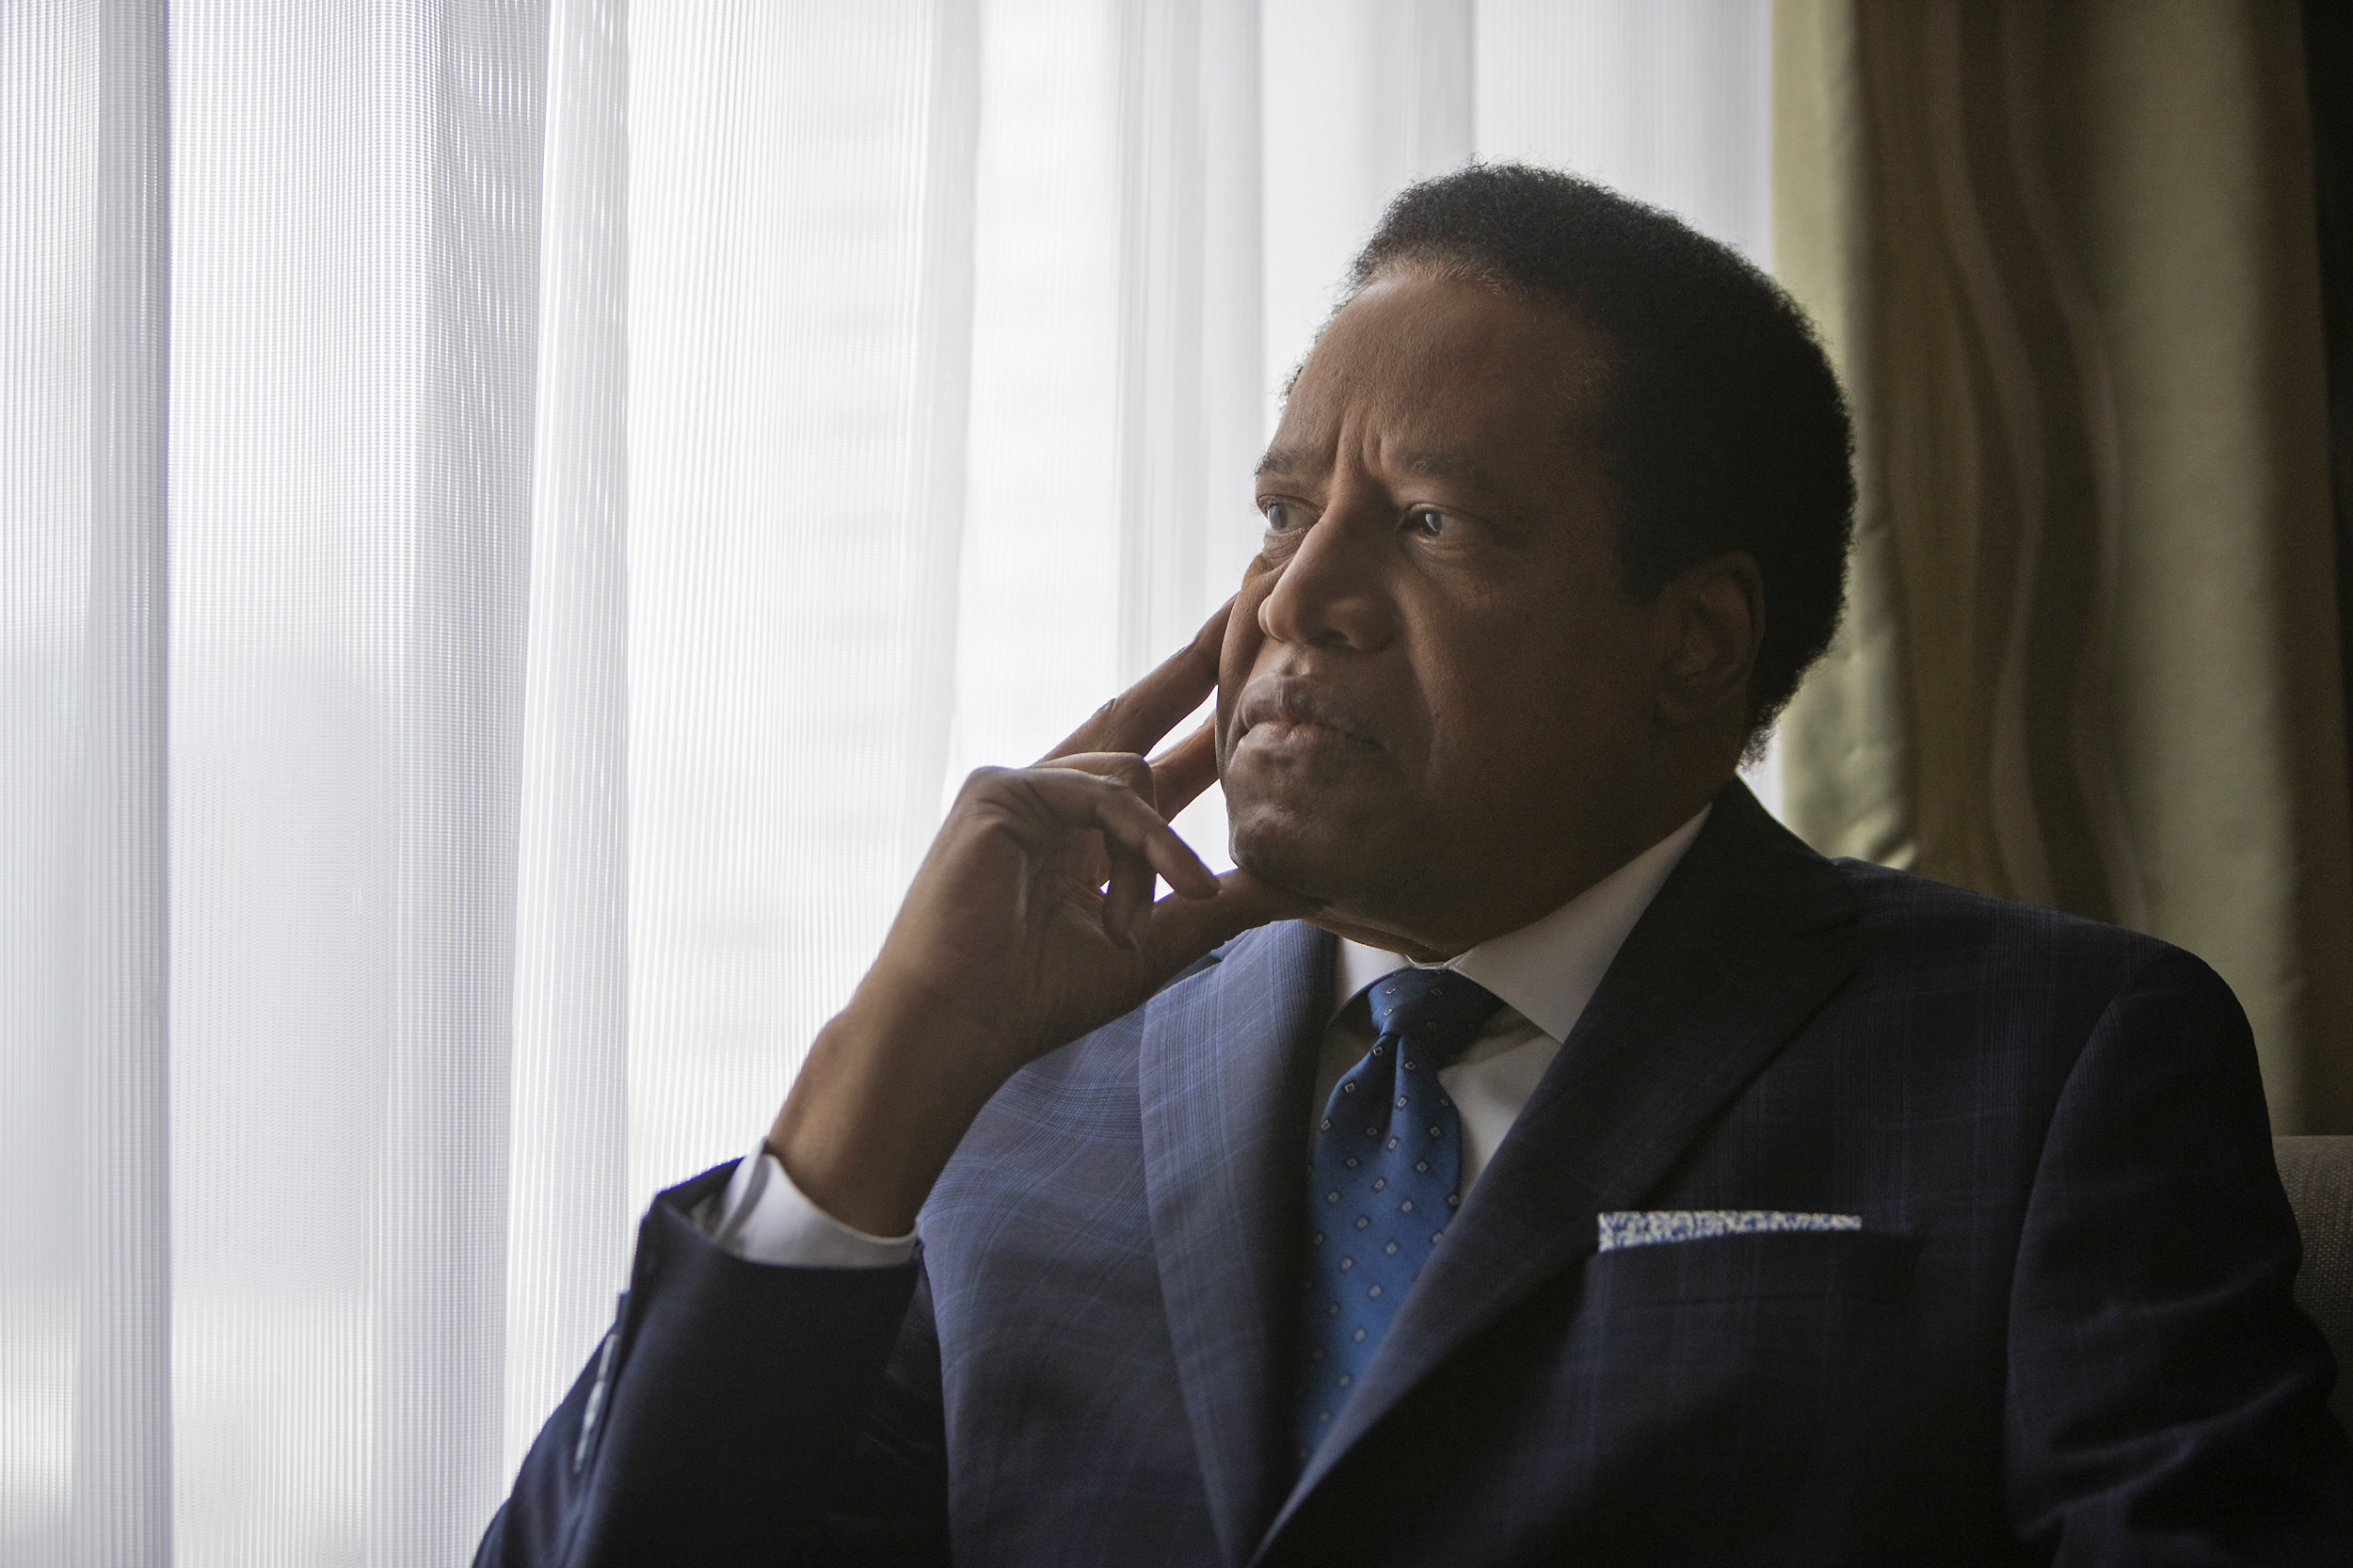 Right-wing provocateur Larry Elder could be liberal California's next governor